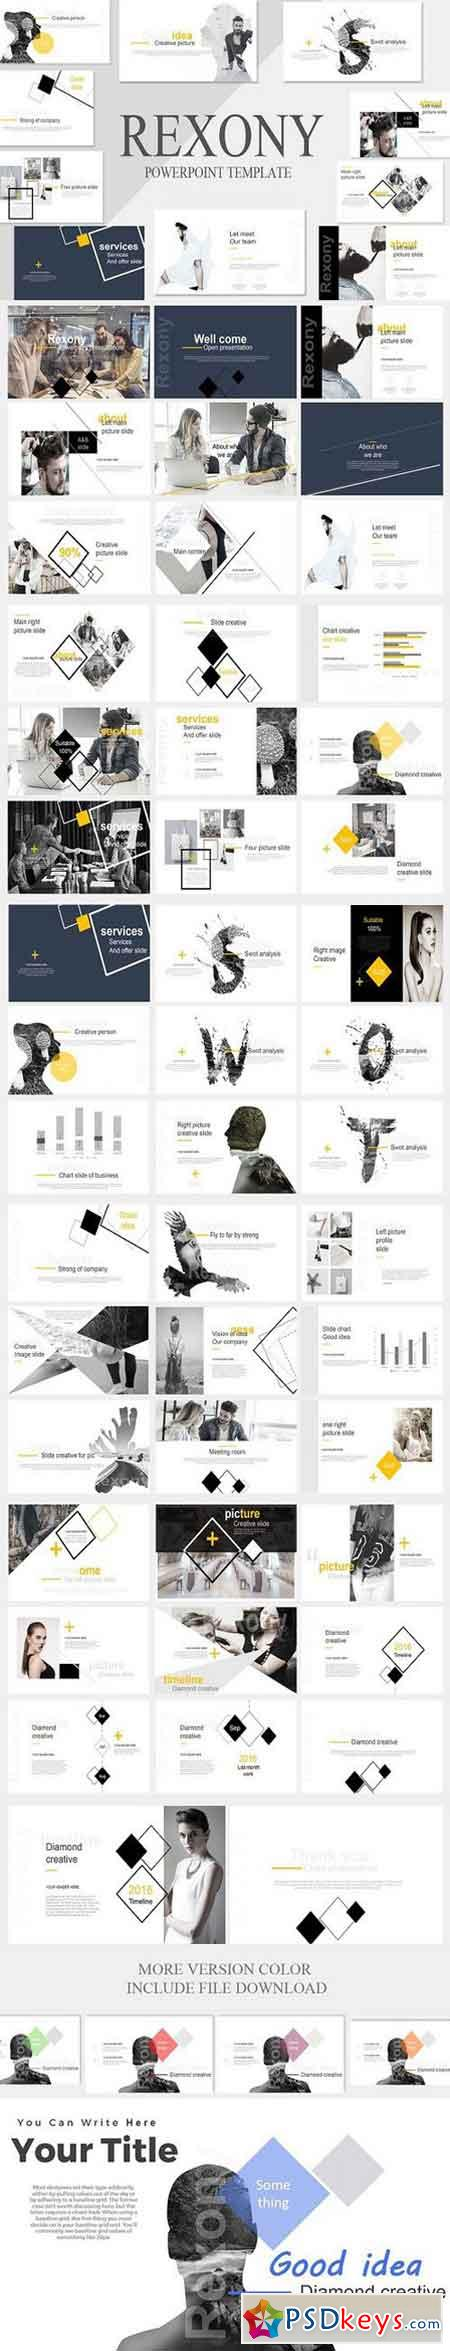 Rexony Creative Powerpoint Template 920004